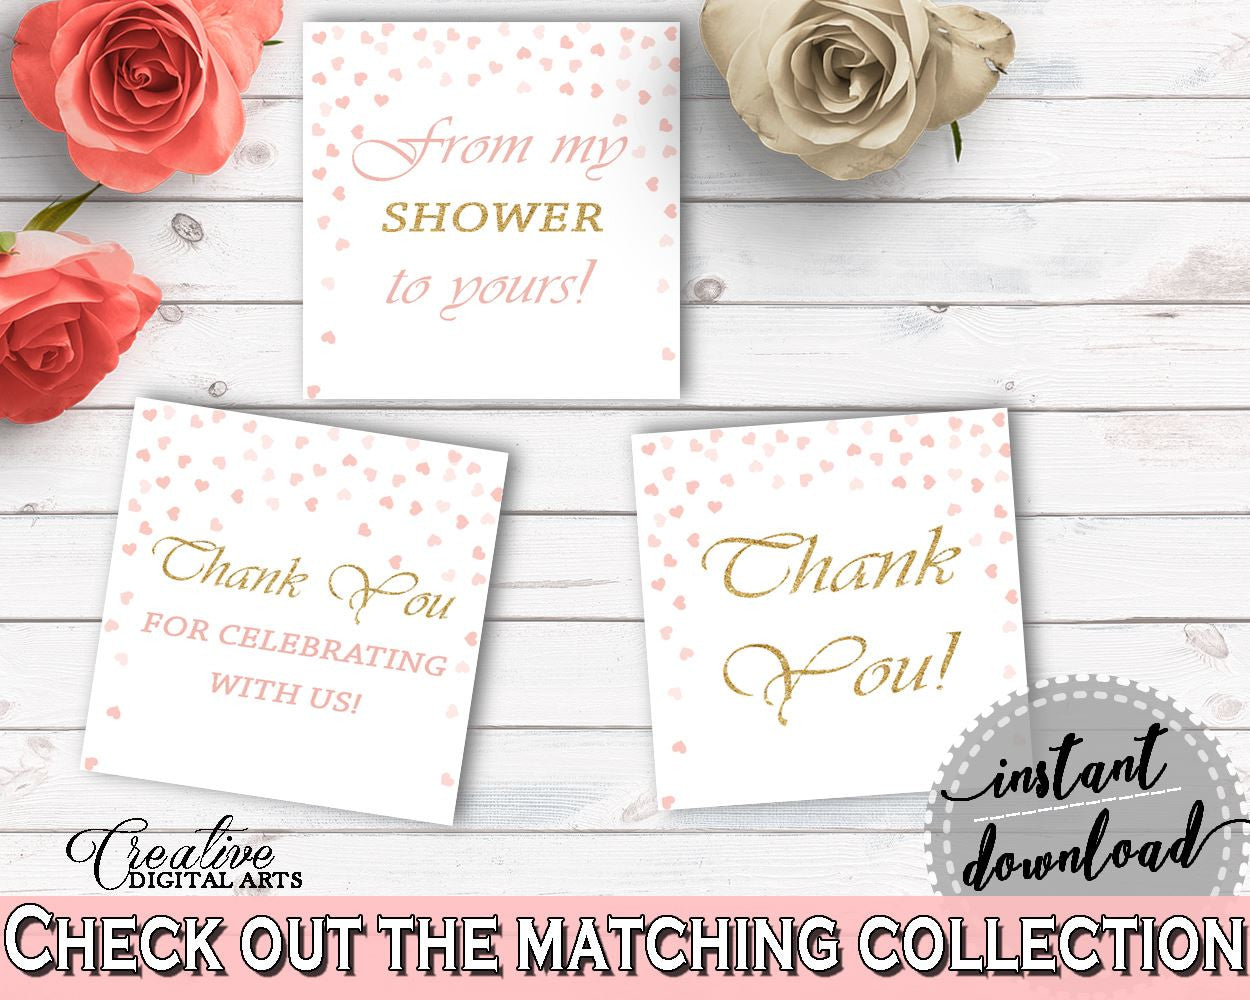 Favor Tags Bridal Shower Favor Tags Pink And Gold Bridal Shower Favor Tags Bridal Shower Pink And Gold Favor Tags Pink Gold - XZCNH - Digital Product